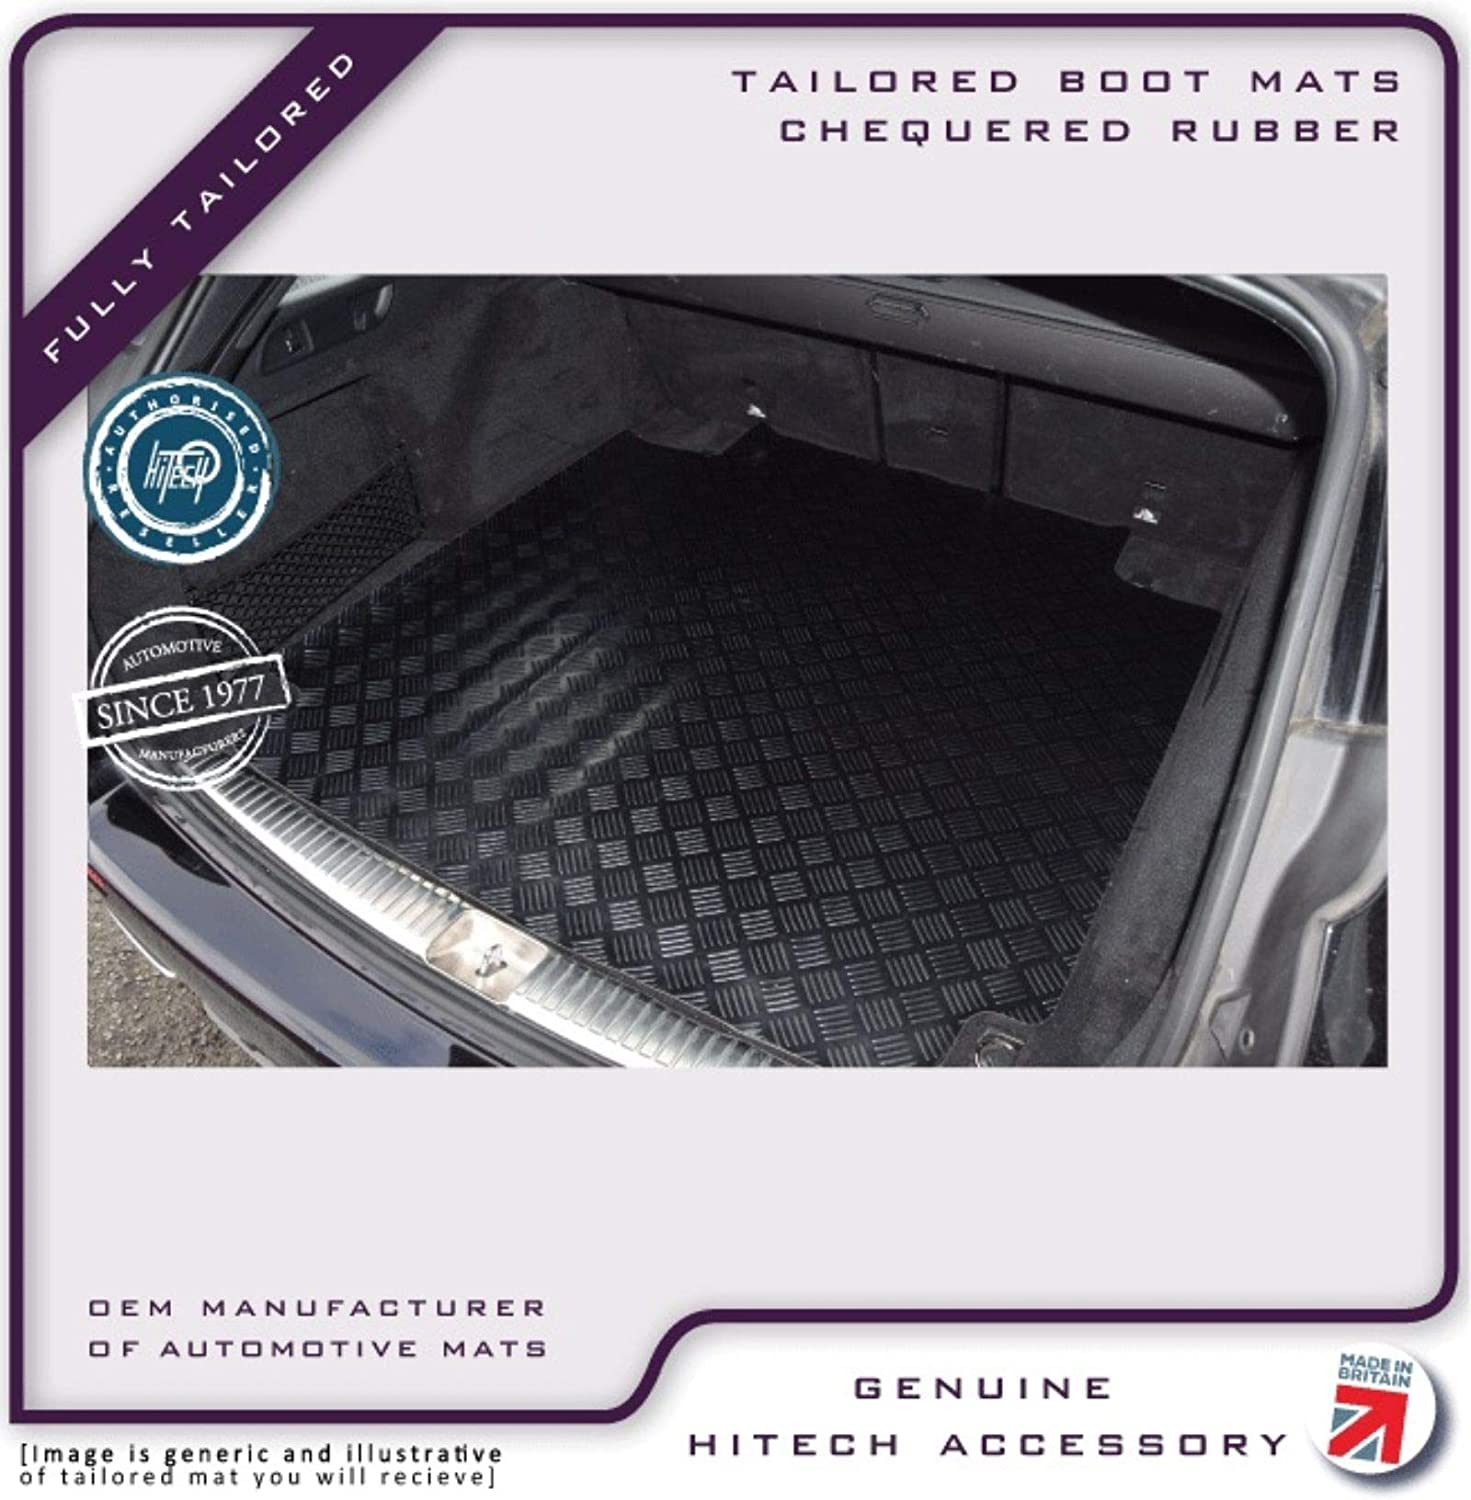 Ford Focus C-Max 2003-2010 Hitech Chequered Rubber Dog//Golf//Pets Car Boot Liner Mat to fit